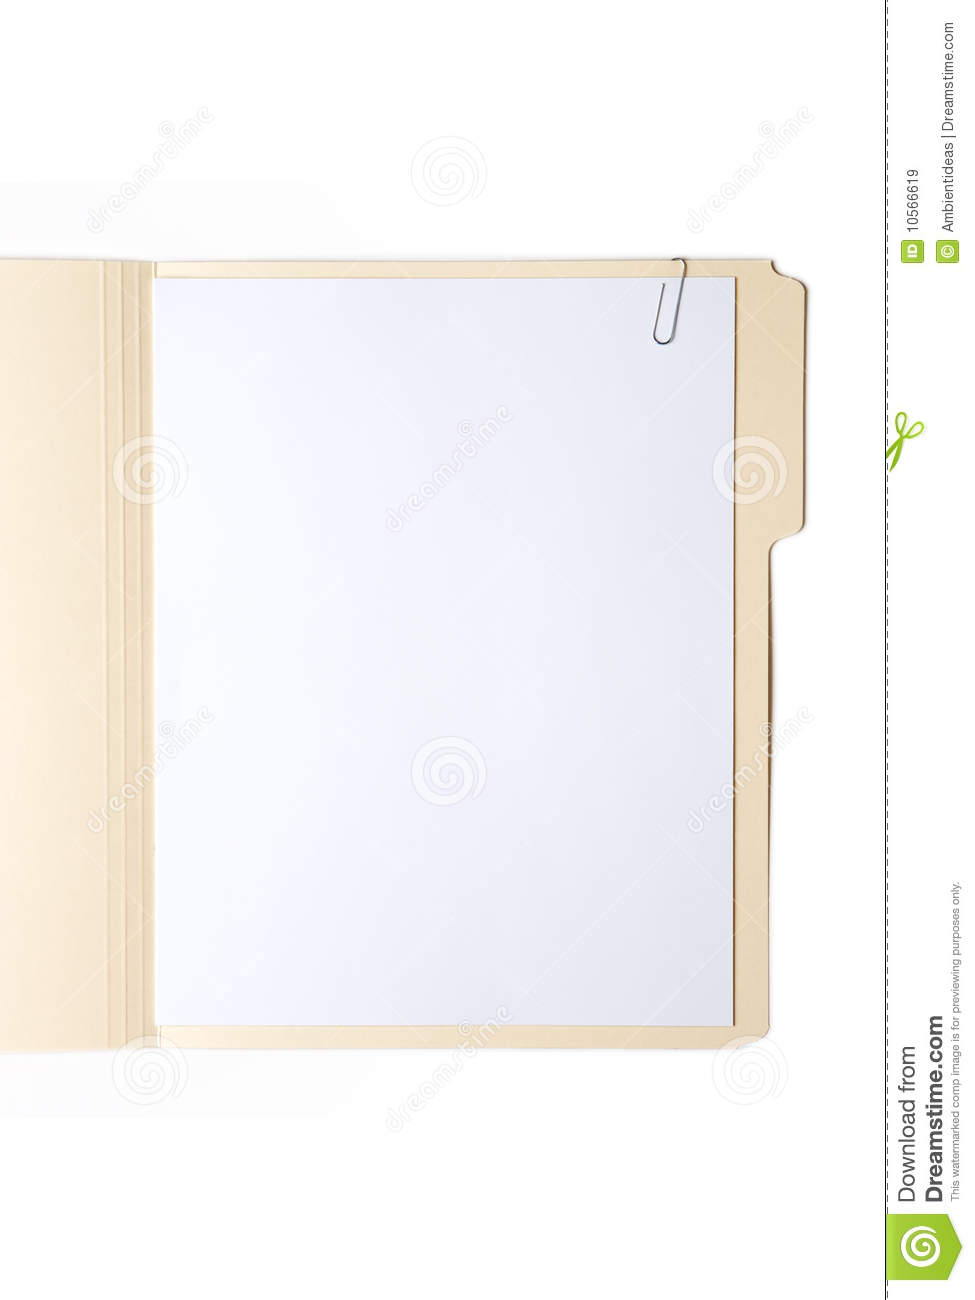 The Folder Of Cute Guys: Manilla Folder With Paper And Clip Stock Image